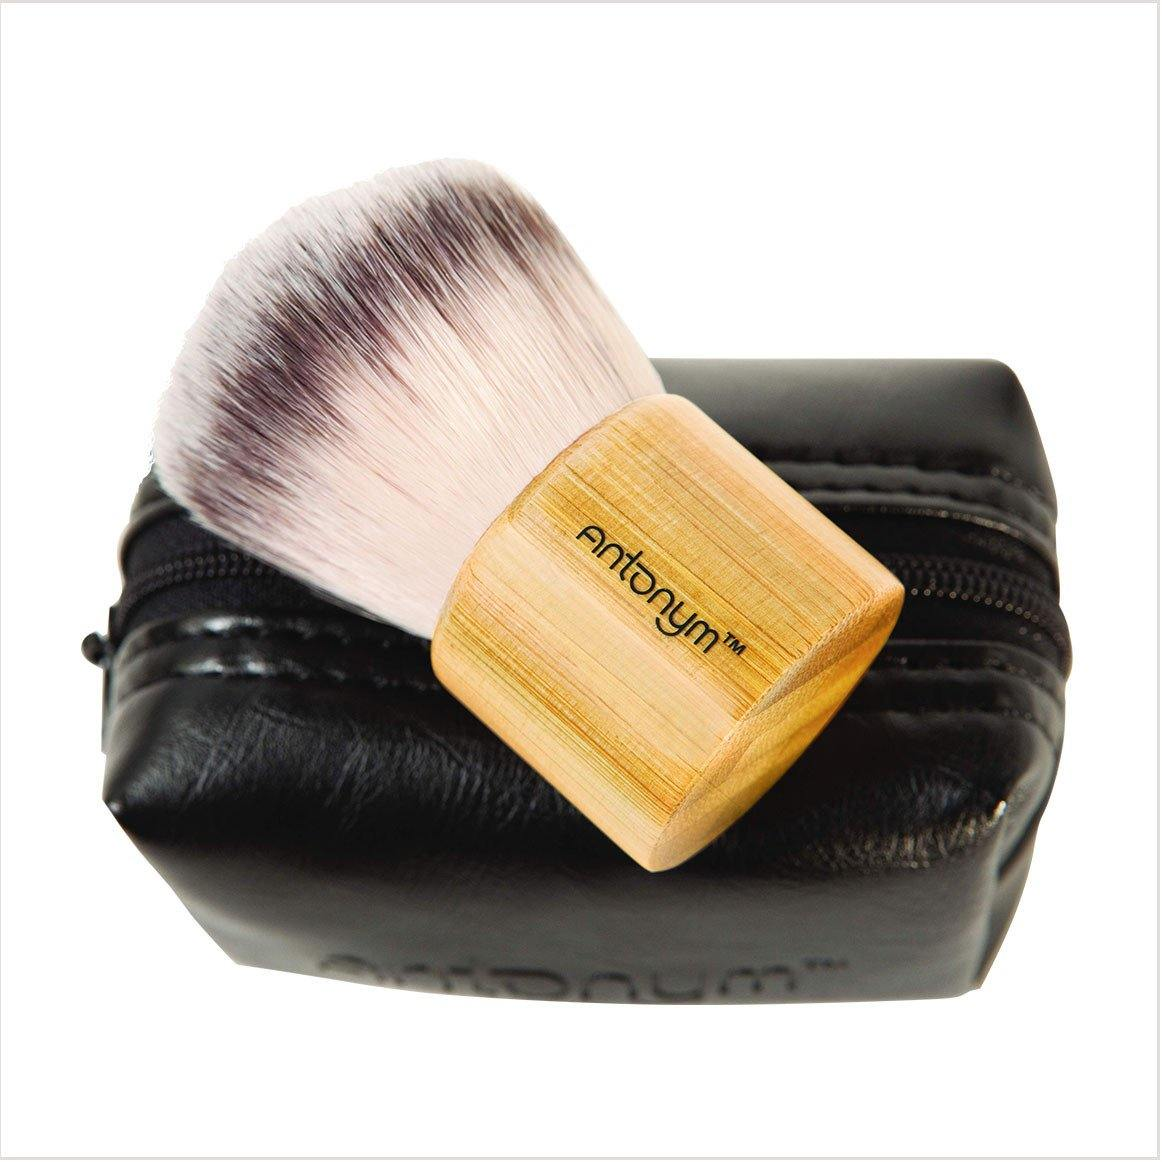 Kabuki Brush/with Pouch - Antonym Cosmetics